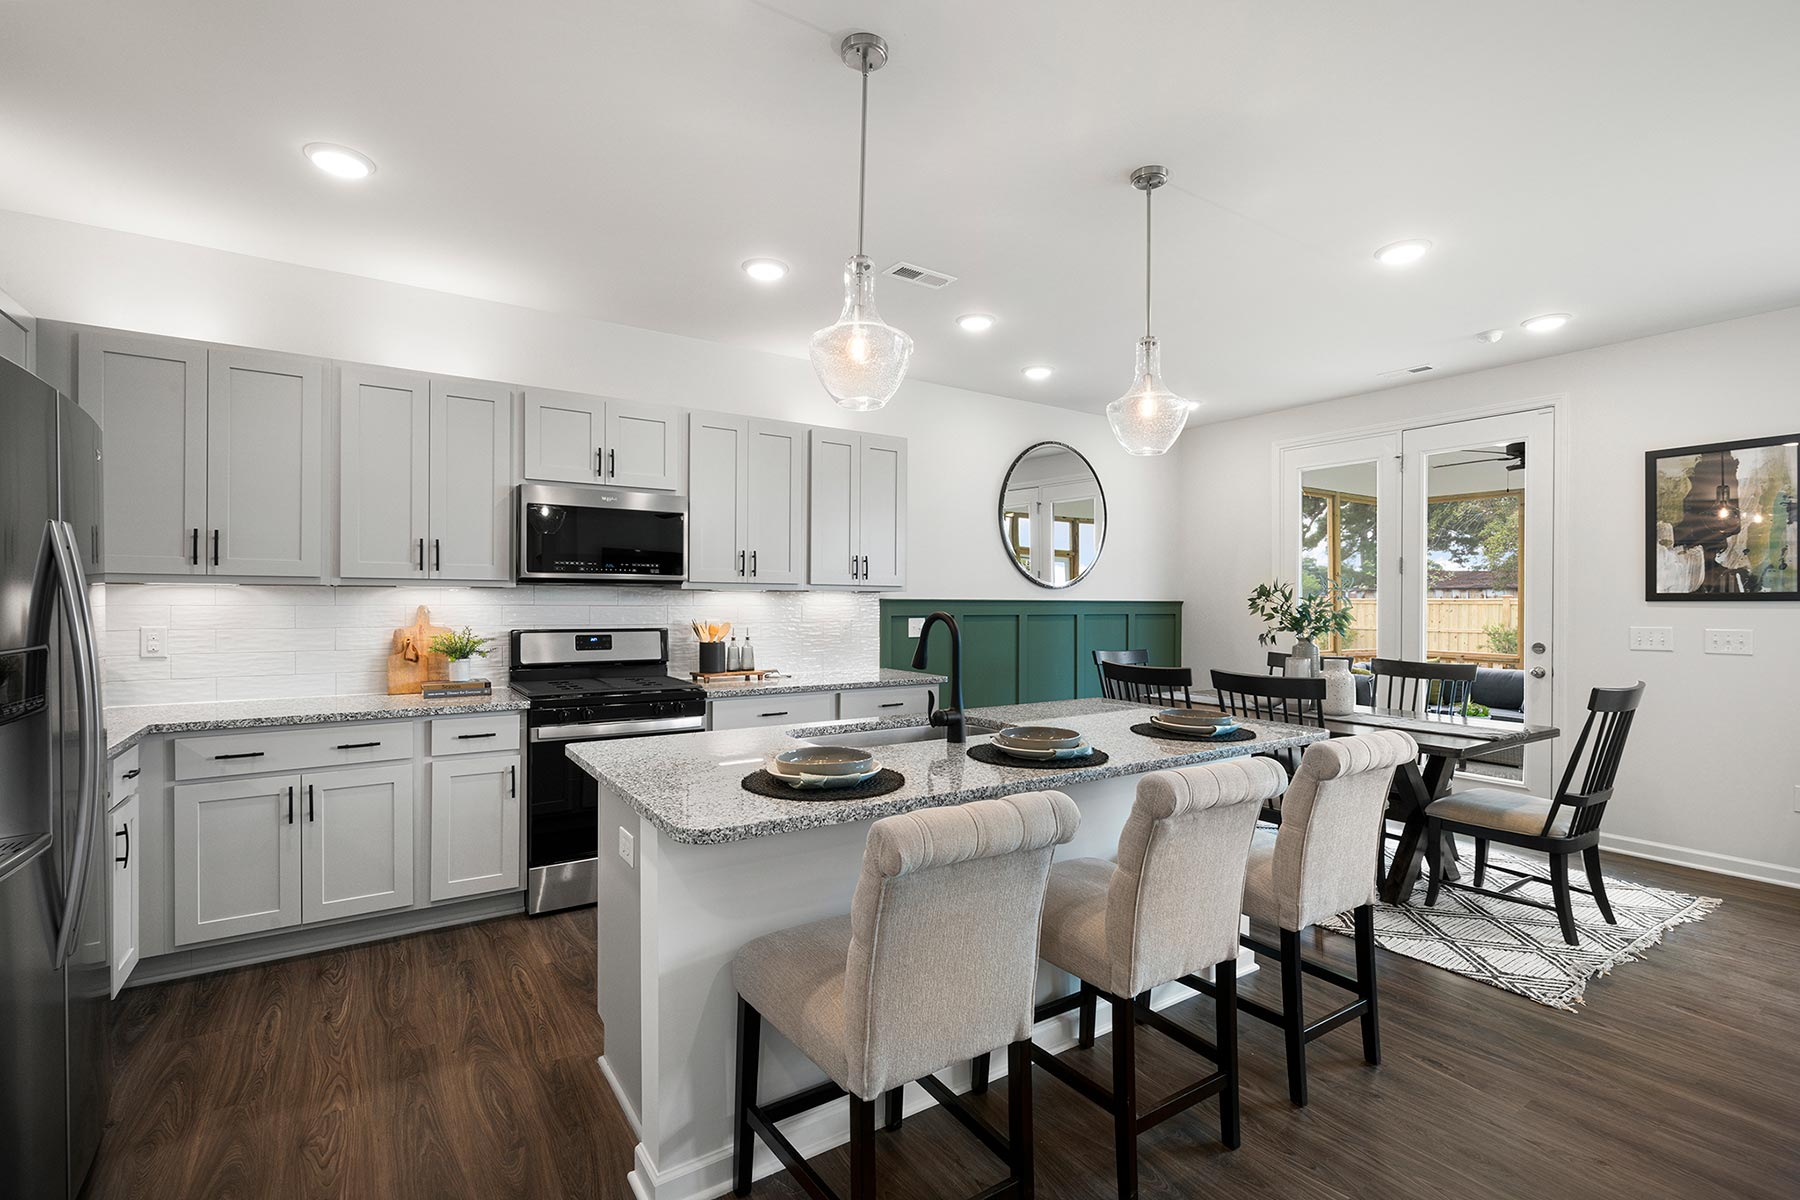 Gaines Plan Kitchen at Wendell Falls in Wendell North Carolina by Mattamy Homes